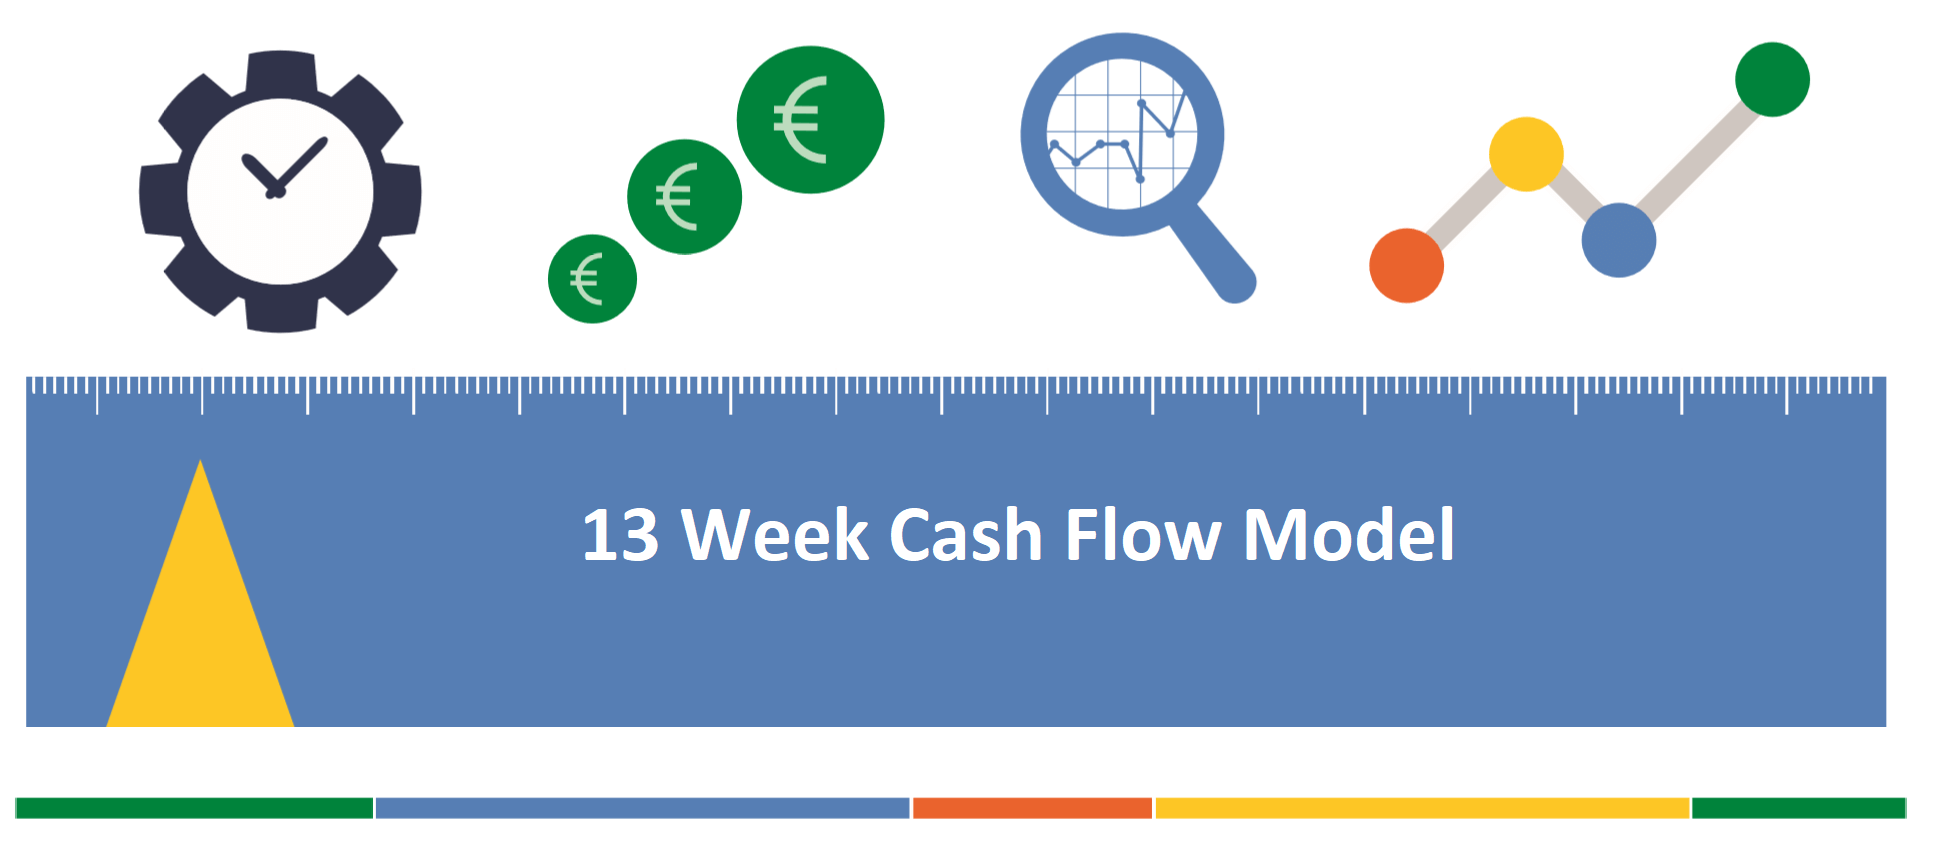 13 week cash flow model